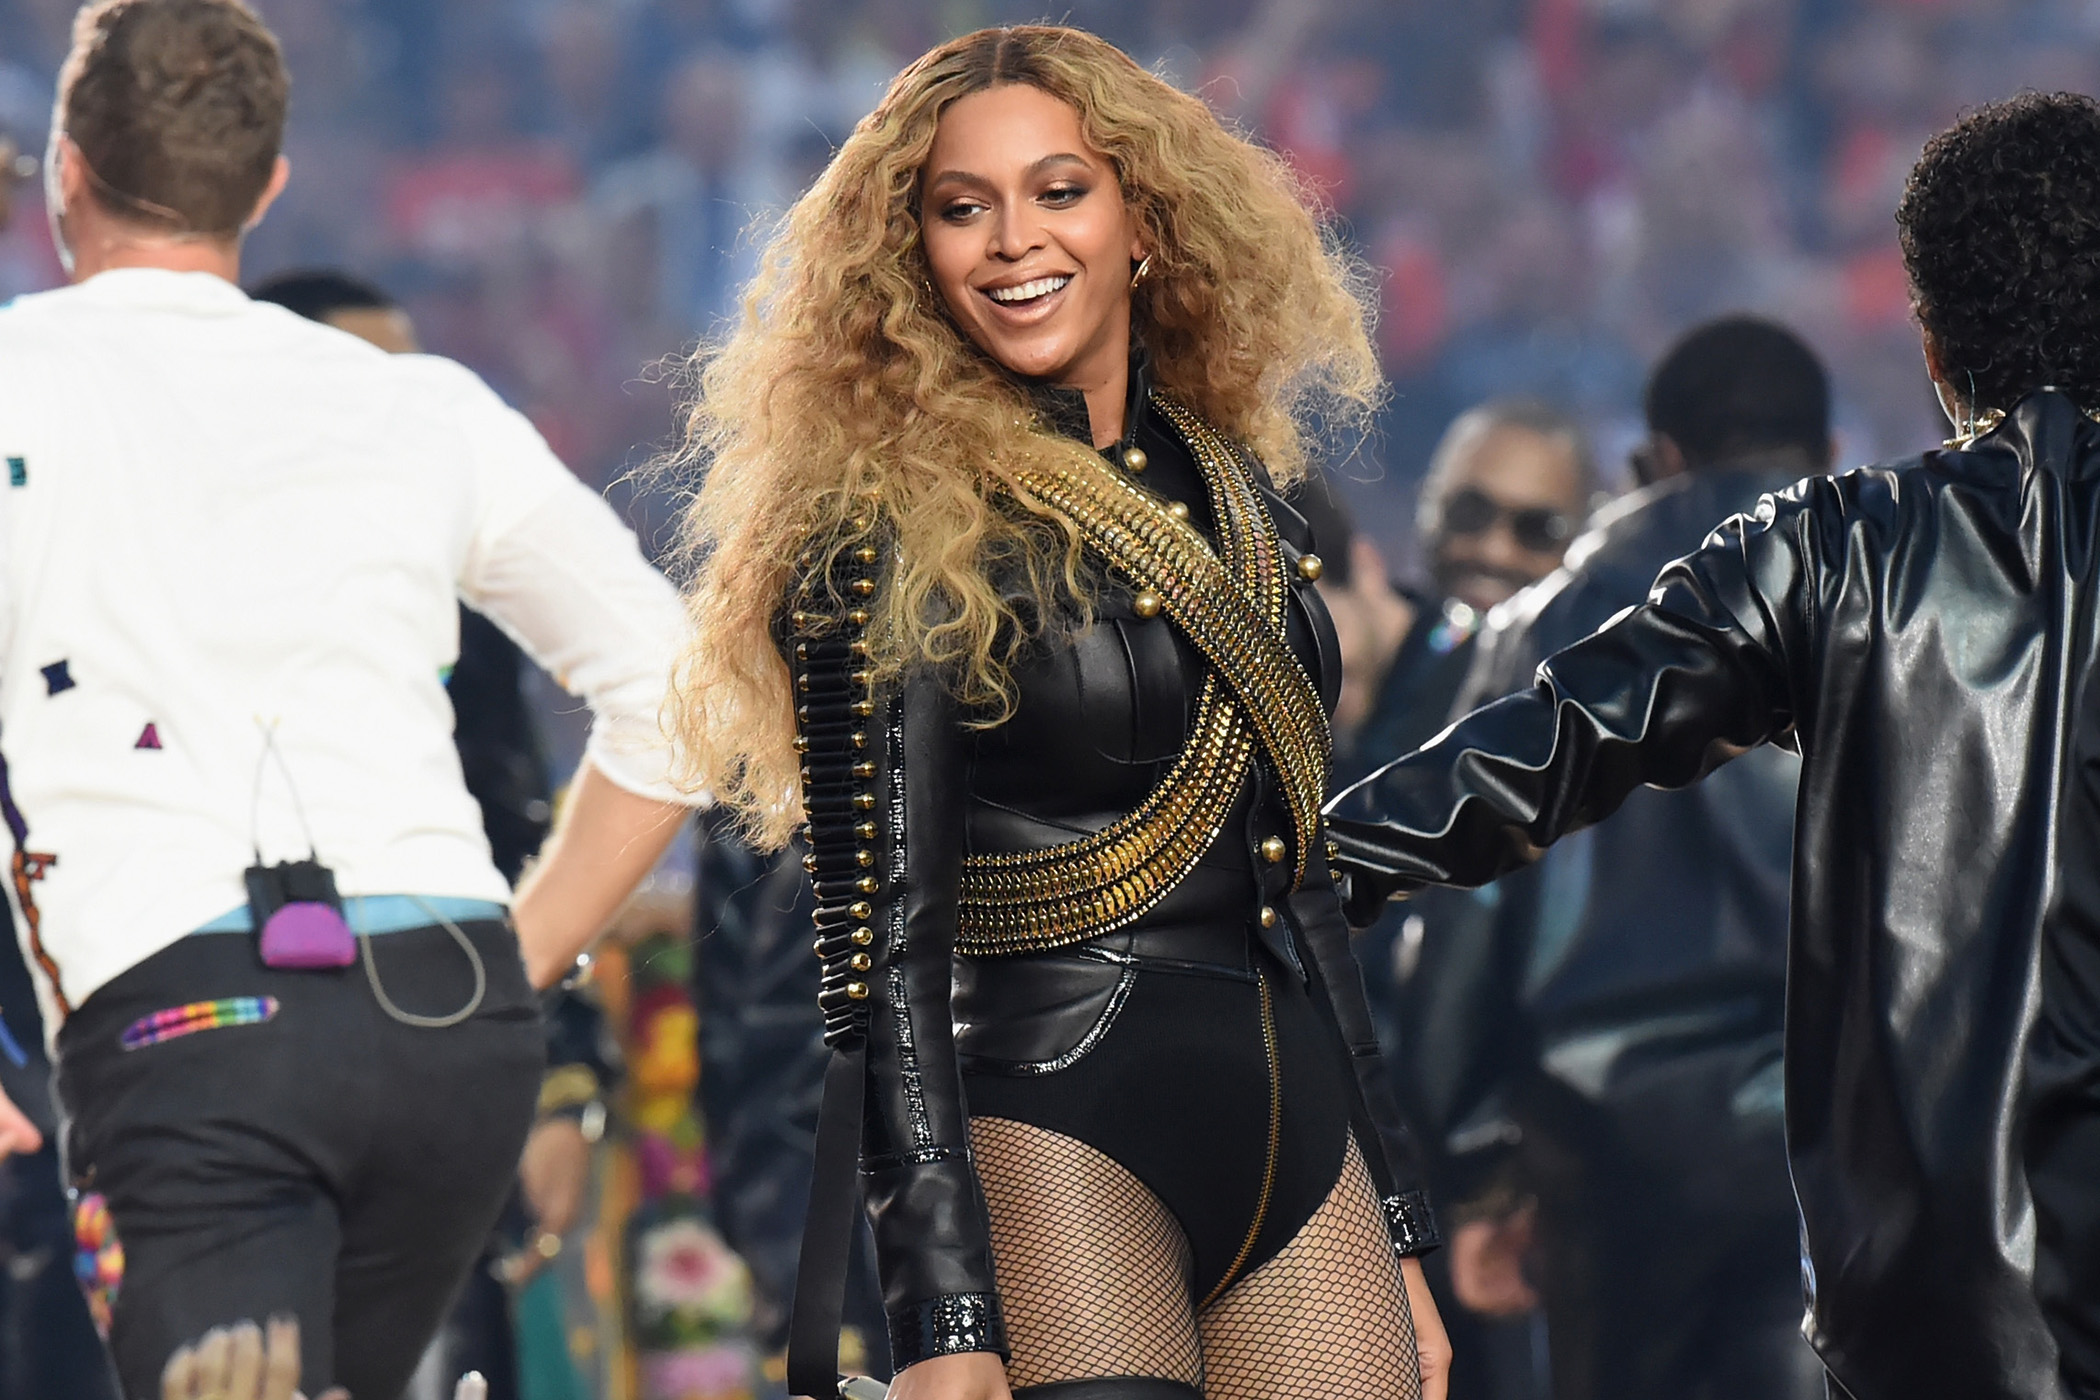 SANTA CLARA, CA - FEBRUARY 07:  Beyonce (R) performs onstage during the Pepsi Super Bowl 50 Halftime Show at Levi's Stadium on February 7, 2016 in Santa Clara, California.  (Photo by Jeff Kravitz/FilmMagic)